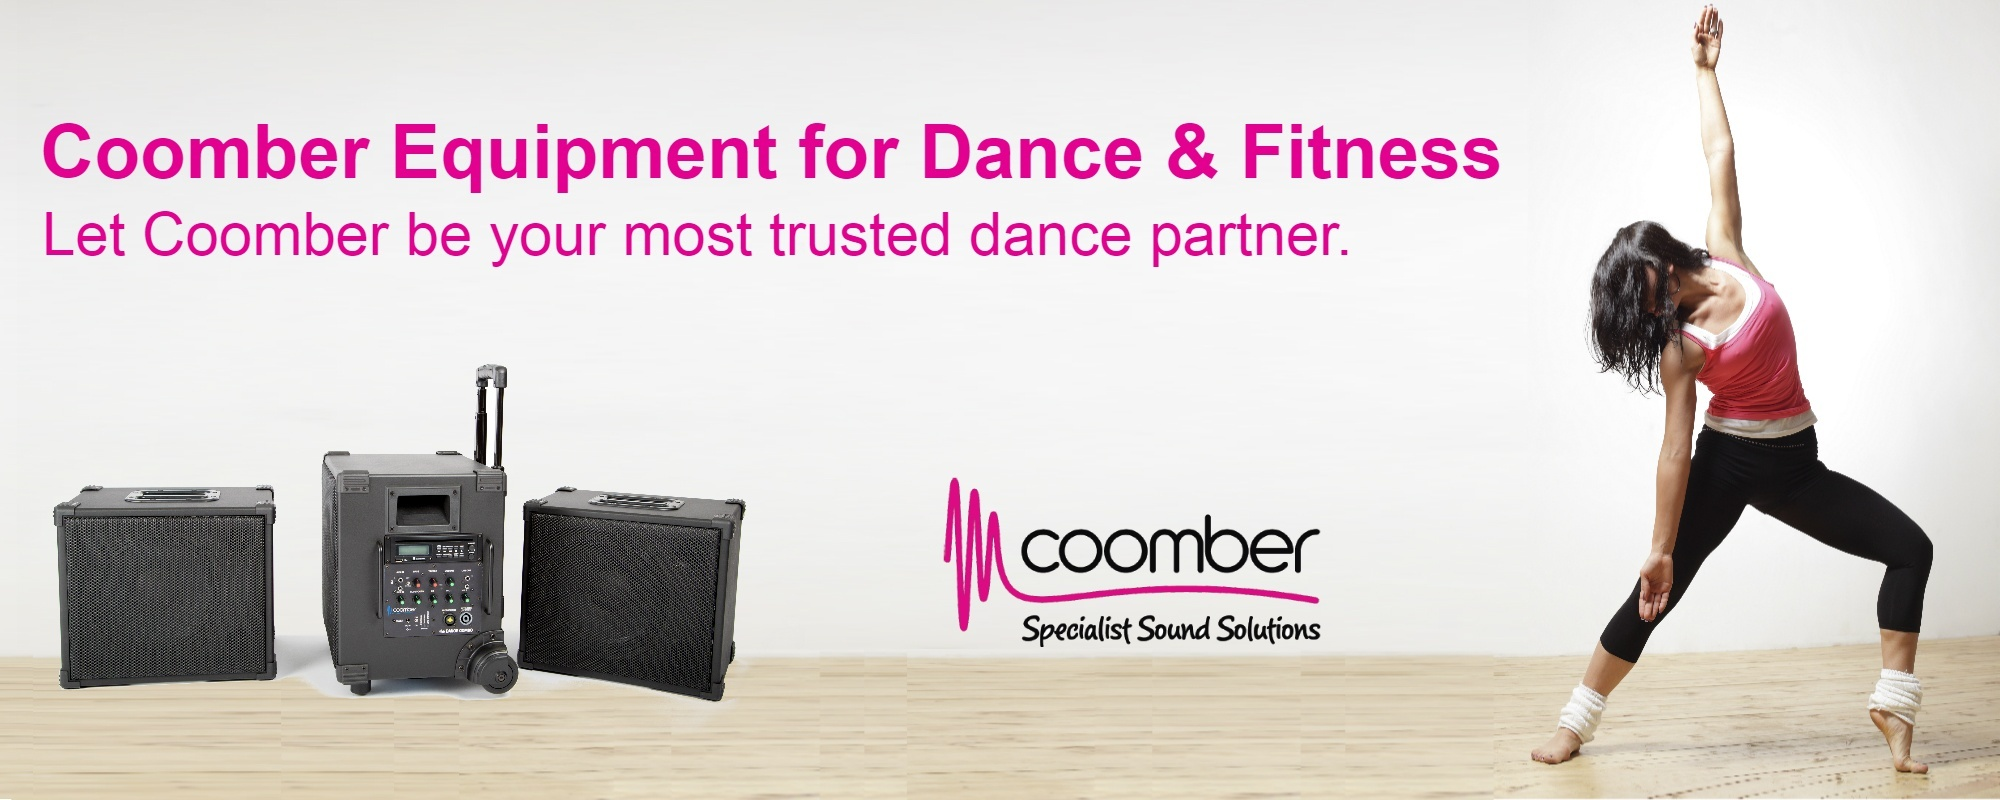 - The most passionate dance teachers have a Coomber in their studio.